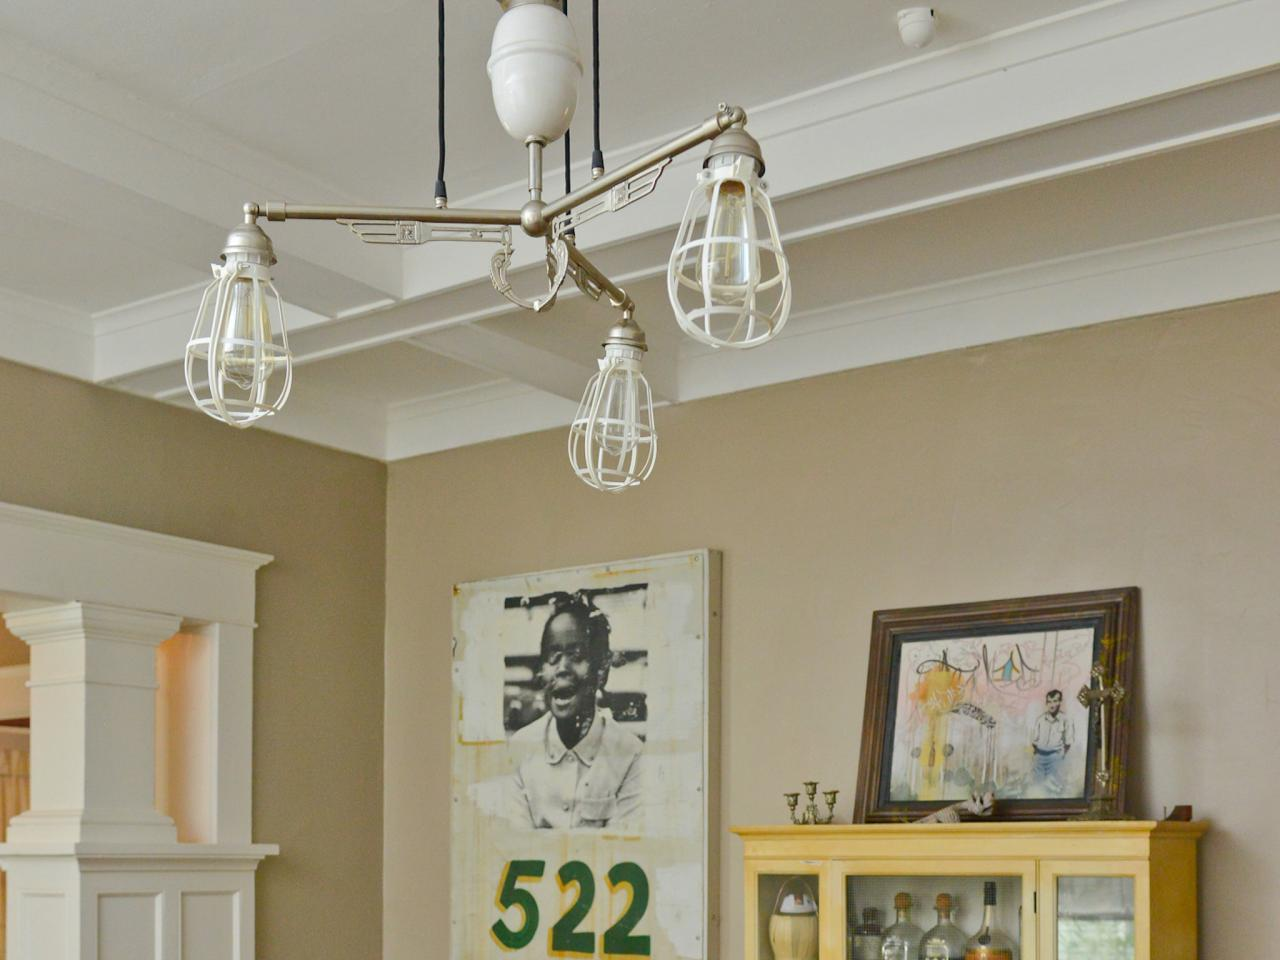 Recycled light fixtures diy network blog made remade diy upcycled light fixtures cool character arubaitofo Gallery